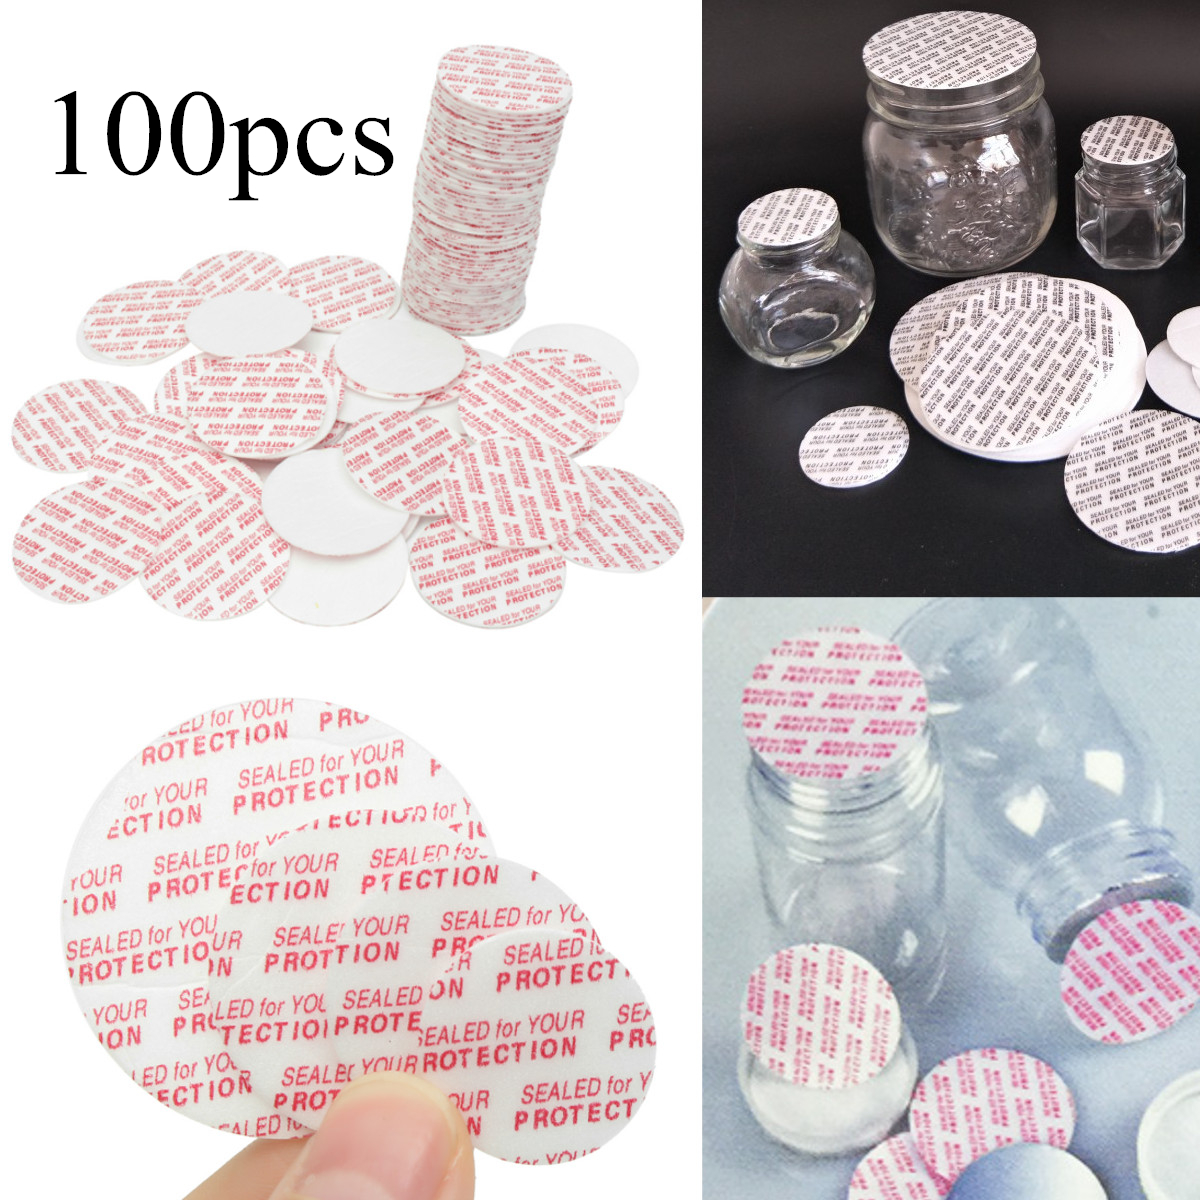 Lot 50 New 24mm Press and Seal Cap Liners Foam Safety Tamper Seals for Bottles